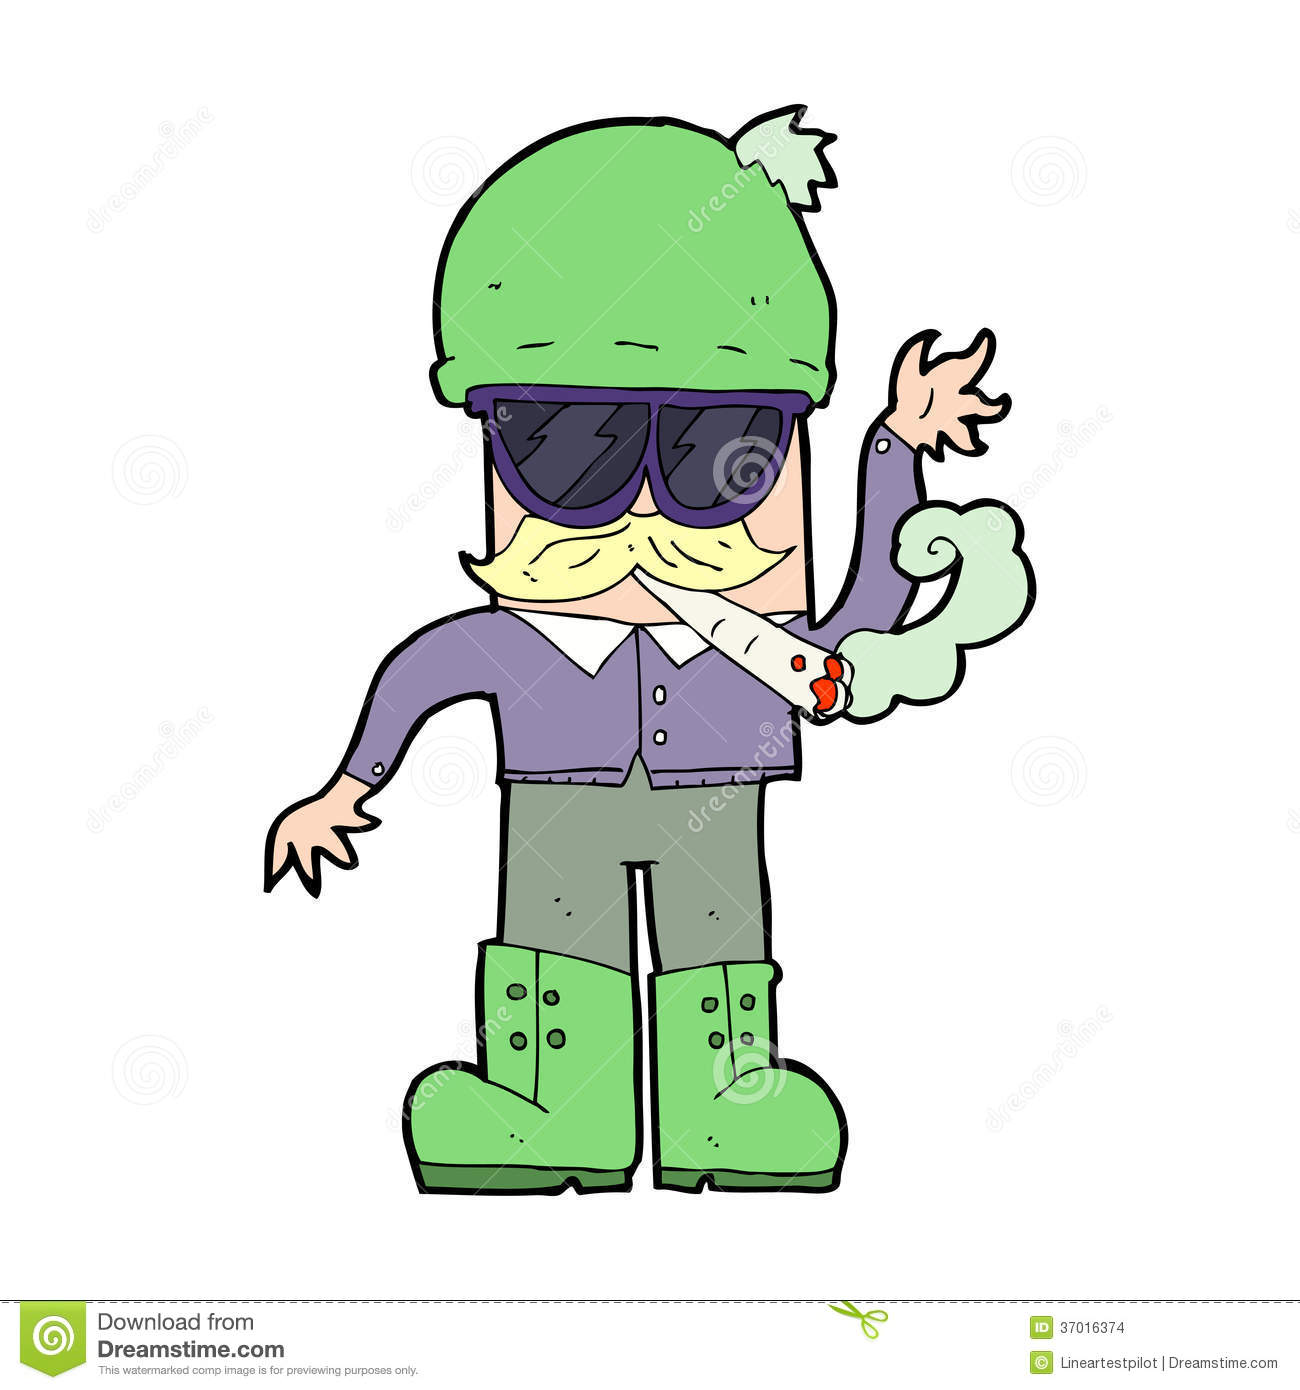 Cartoon Man Smoking Pot Stock Images - Image: 37016374